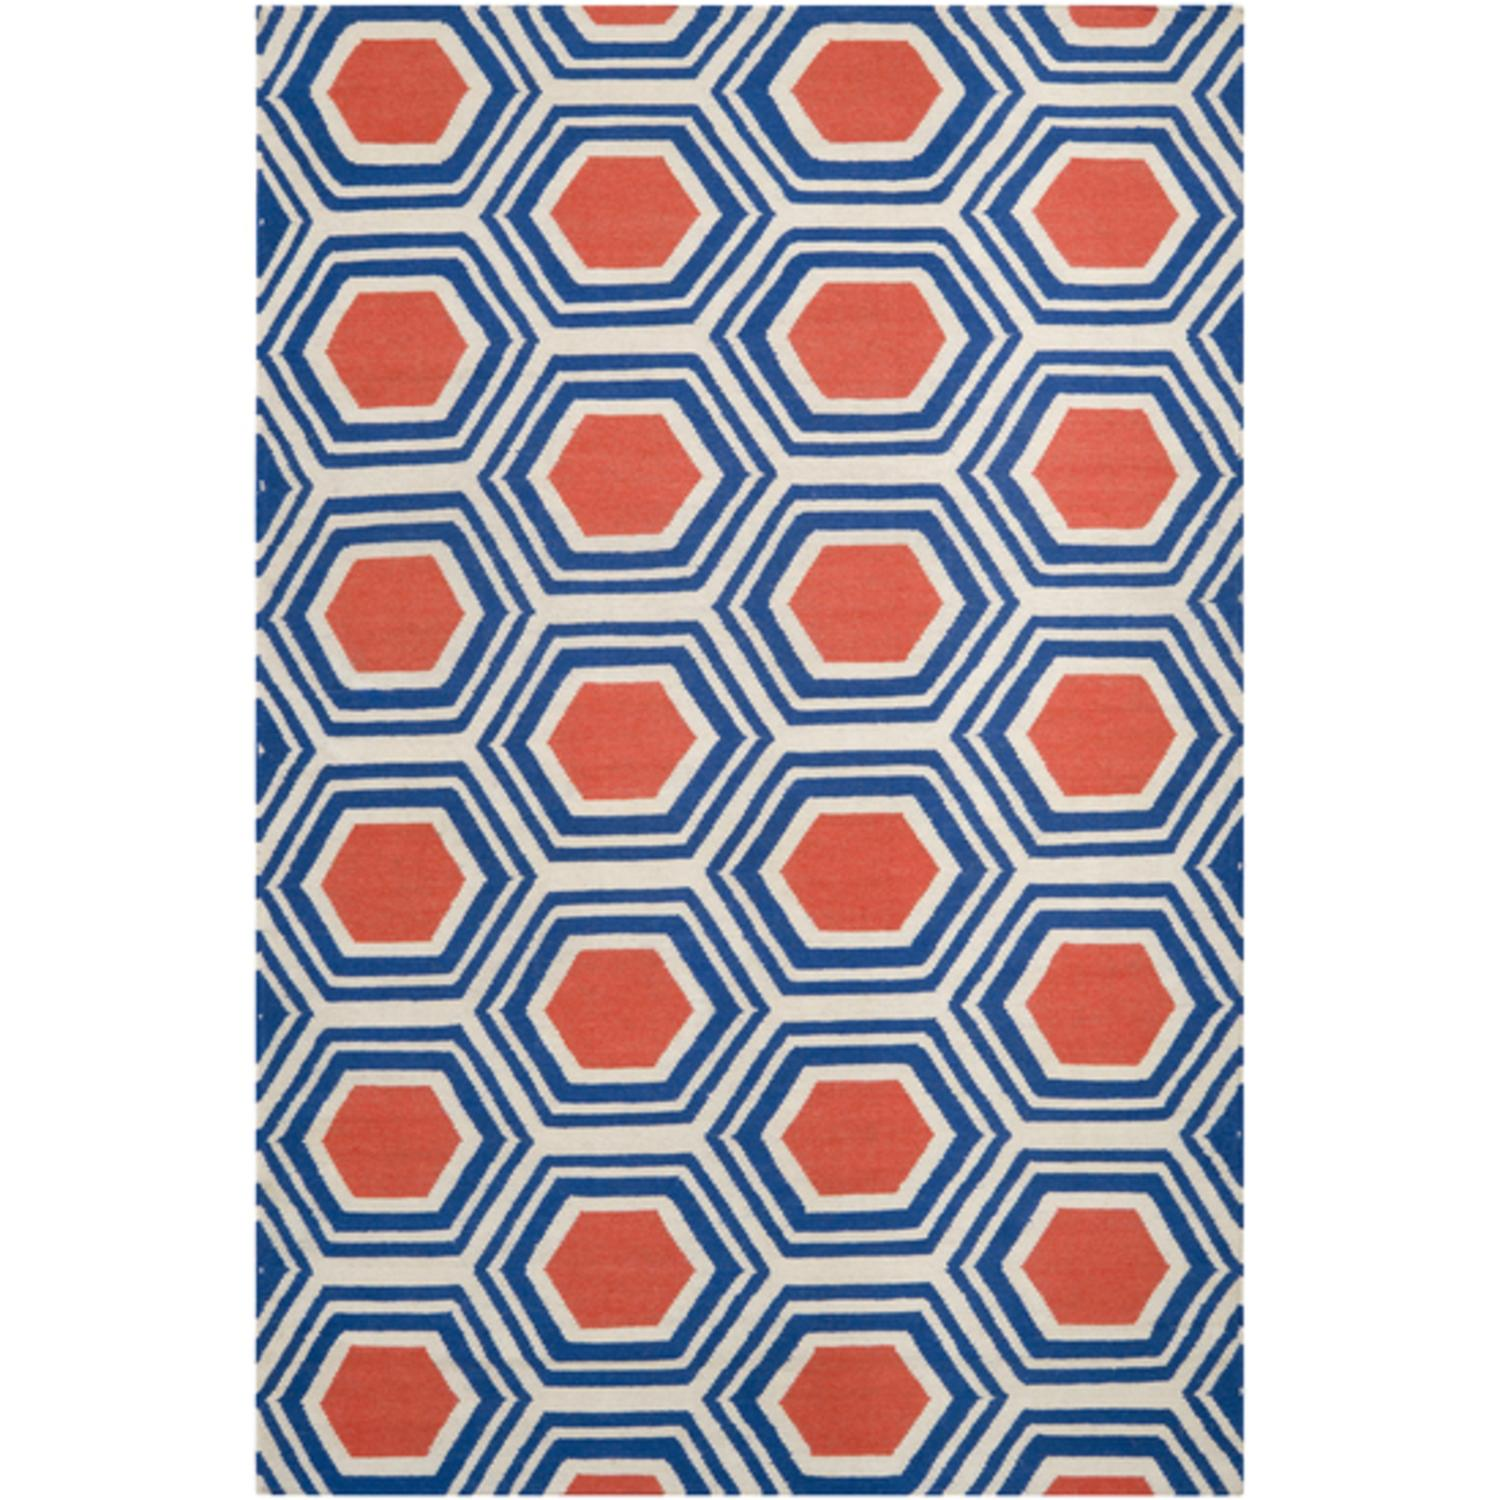 3.5' x 5.5' Retro Octagon Poppy Red and Blue Wool Area Throw Rug